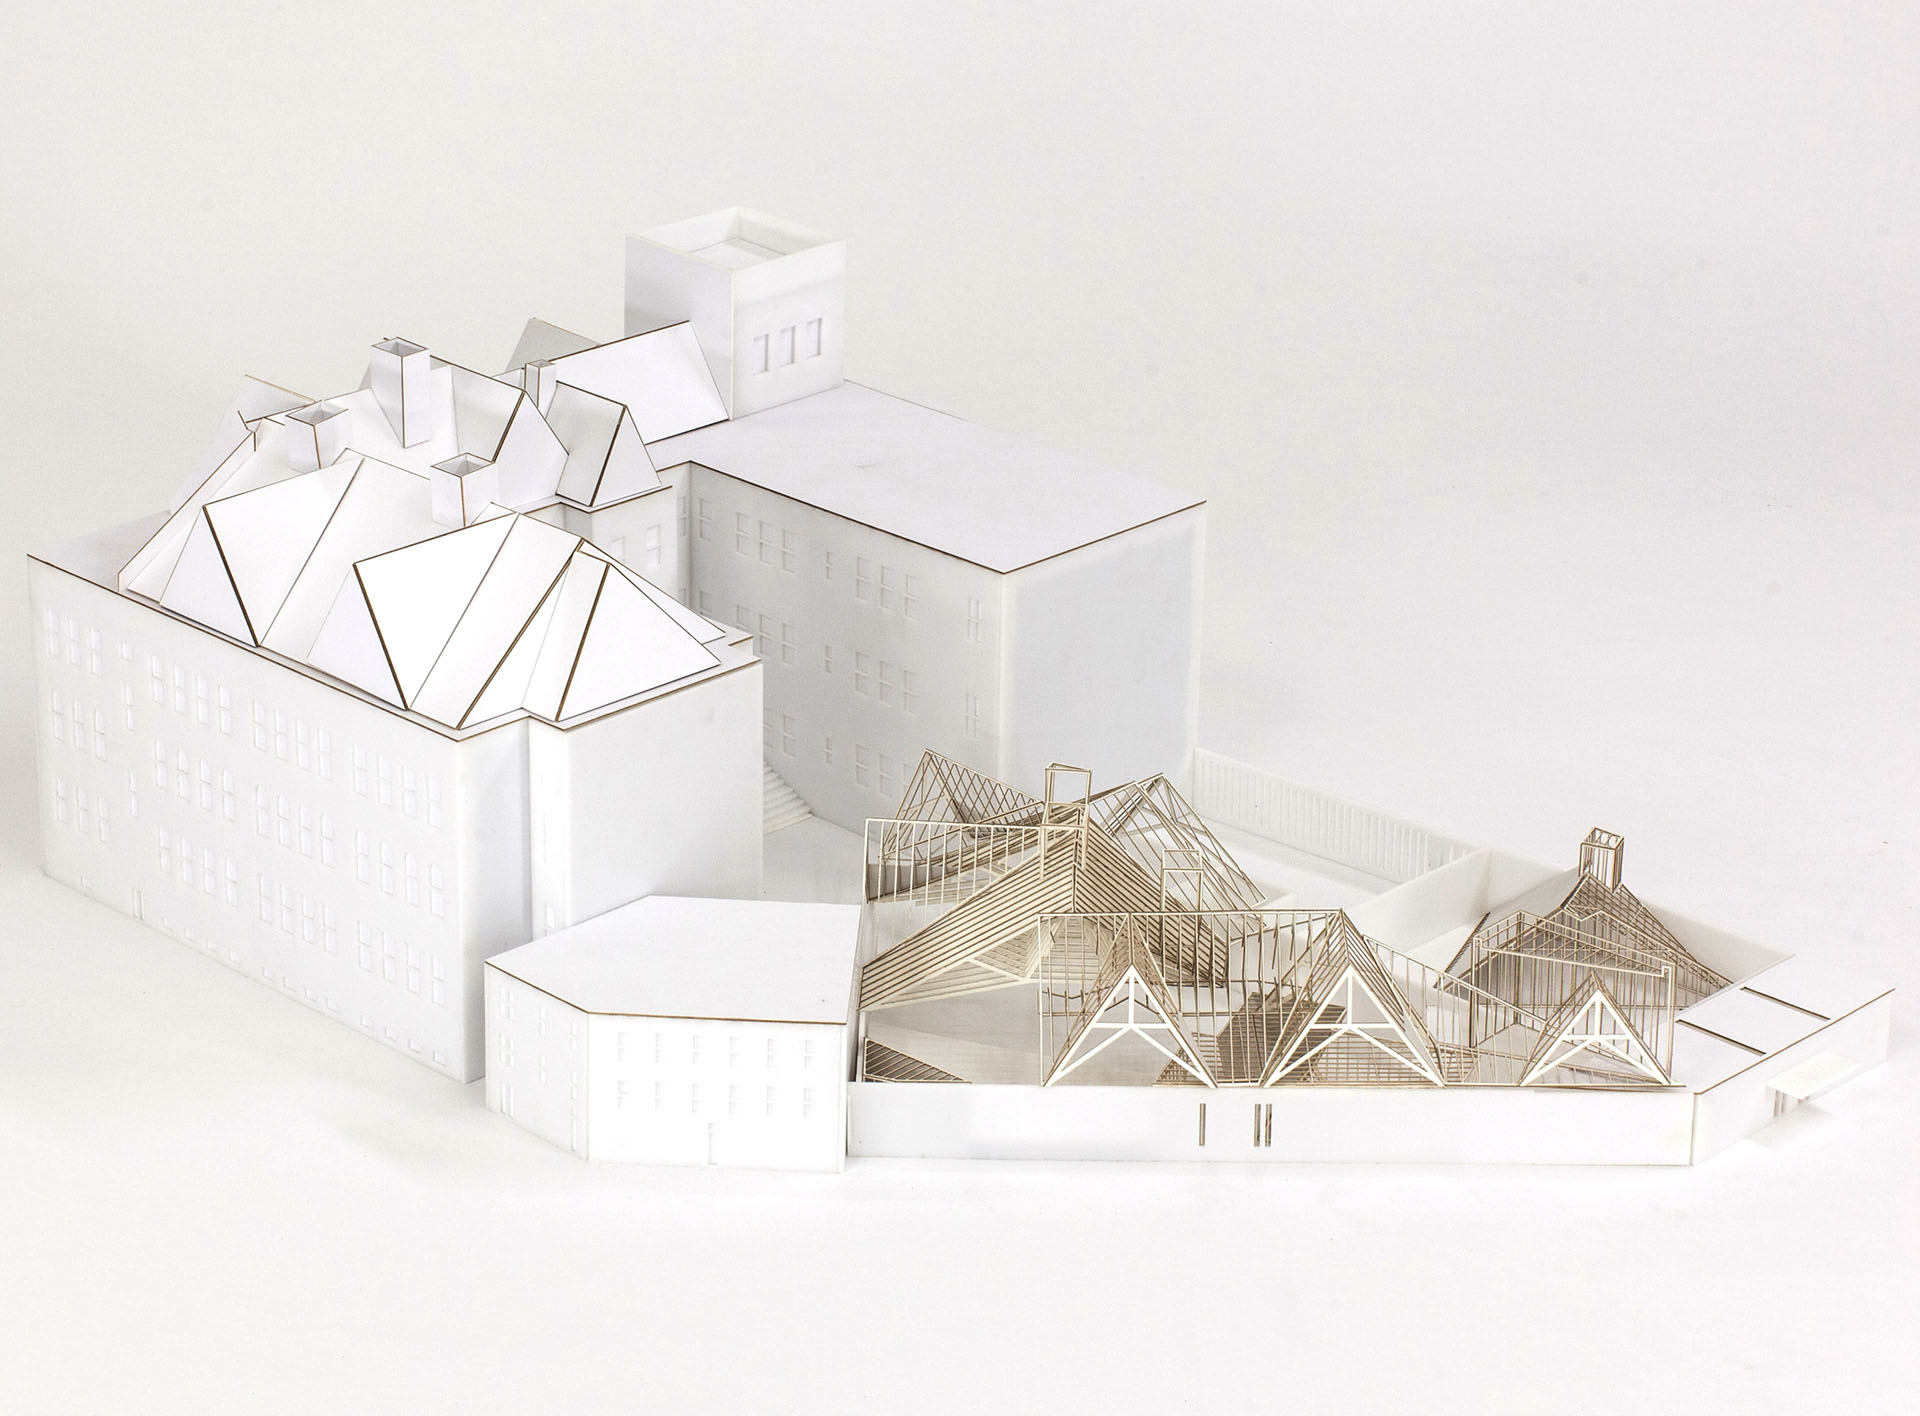 Photograph of an architectural site model of MoMA PS1 Roof Deck proposal